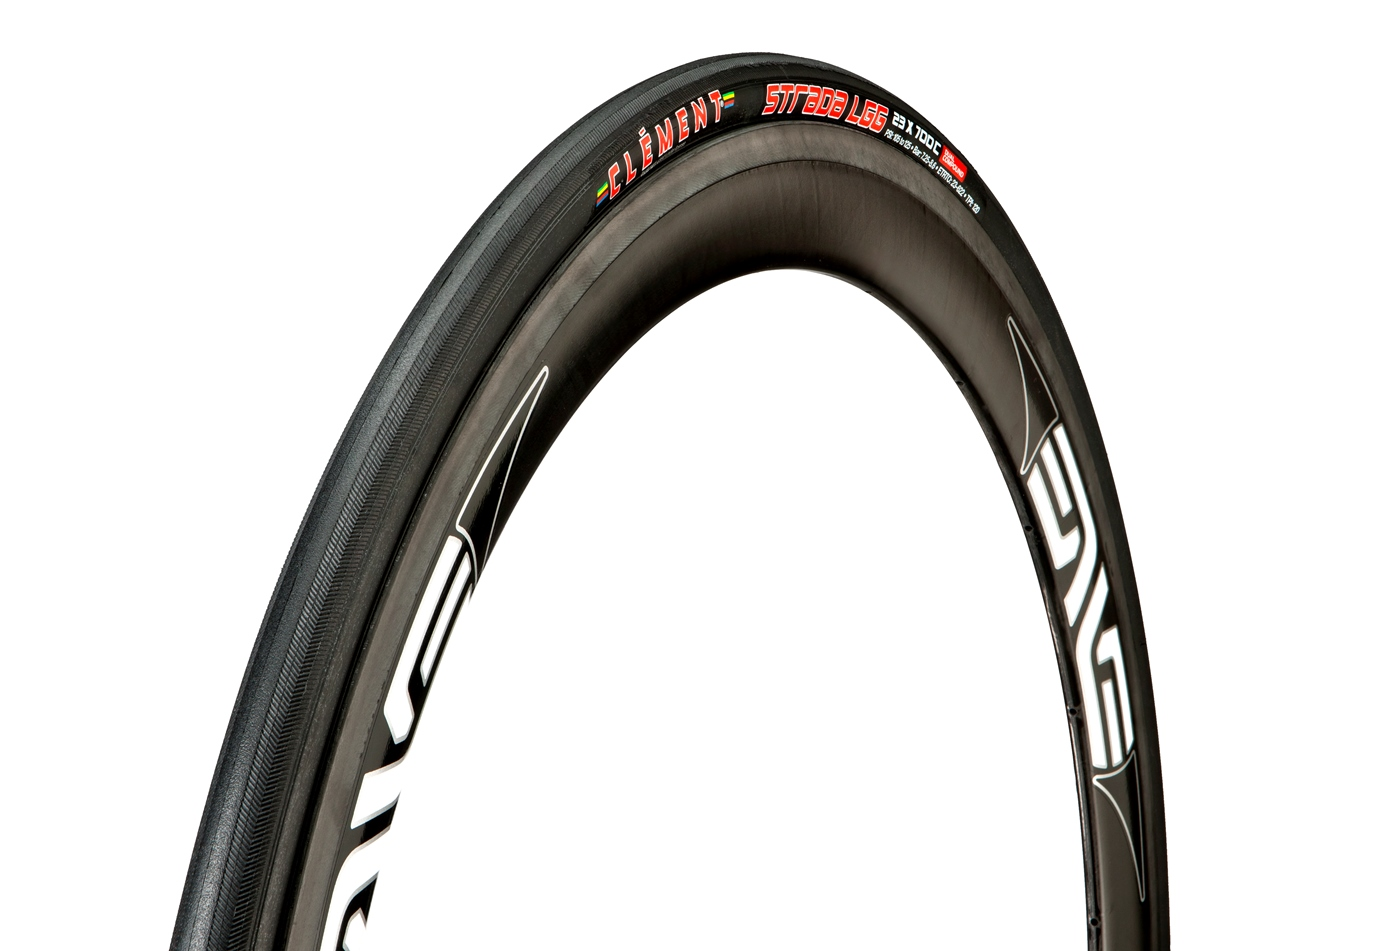 Road, Everyday Riding and Training Bicycle Tires